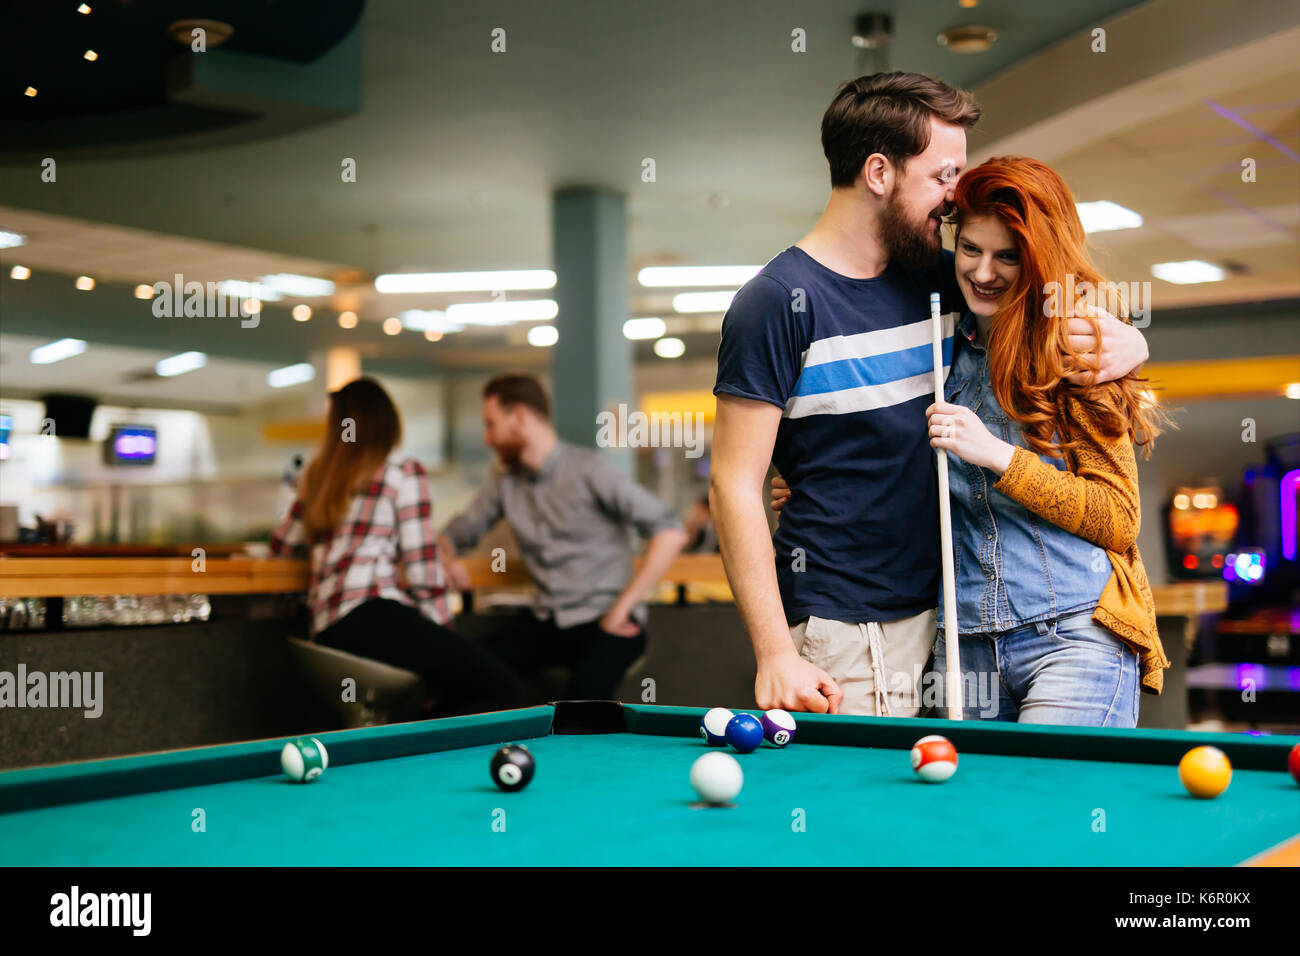 Couple spending time together by playing pool - Stock Image